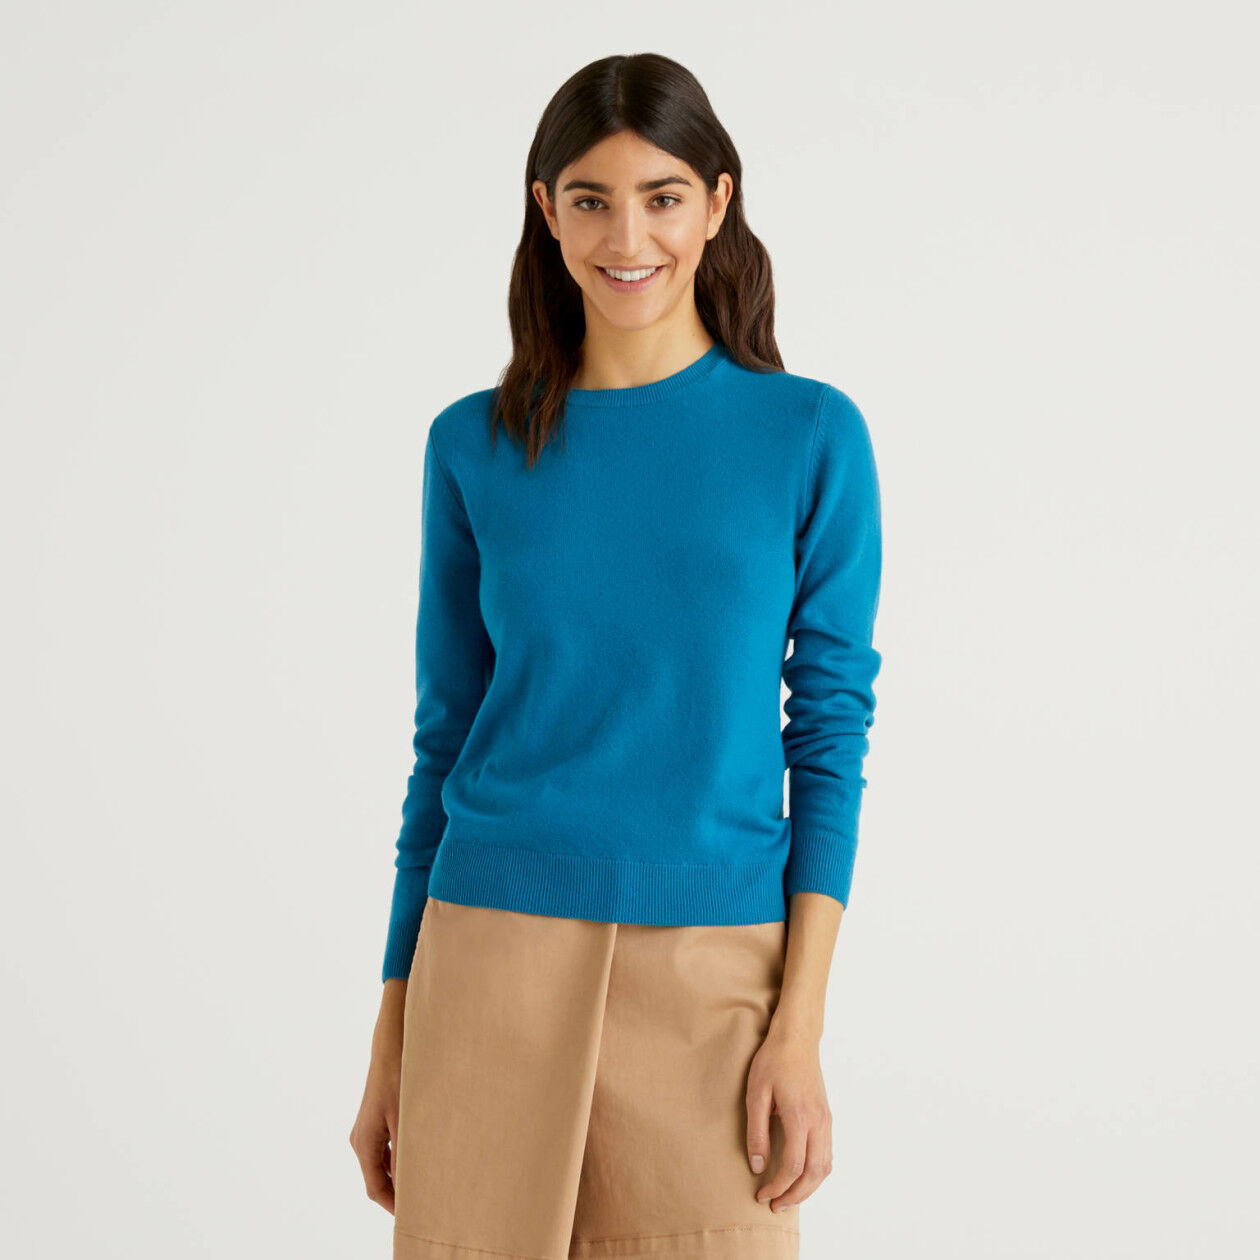 Teal crew neck sweater in pure virgin wool